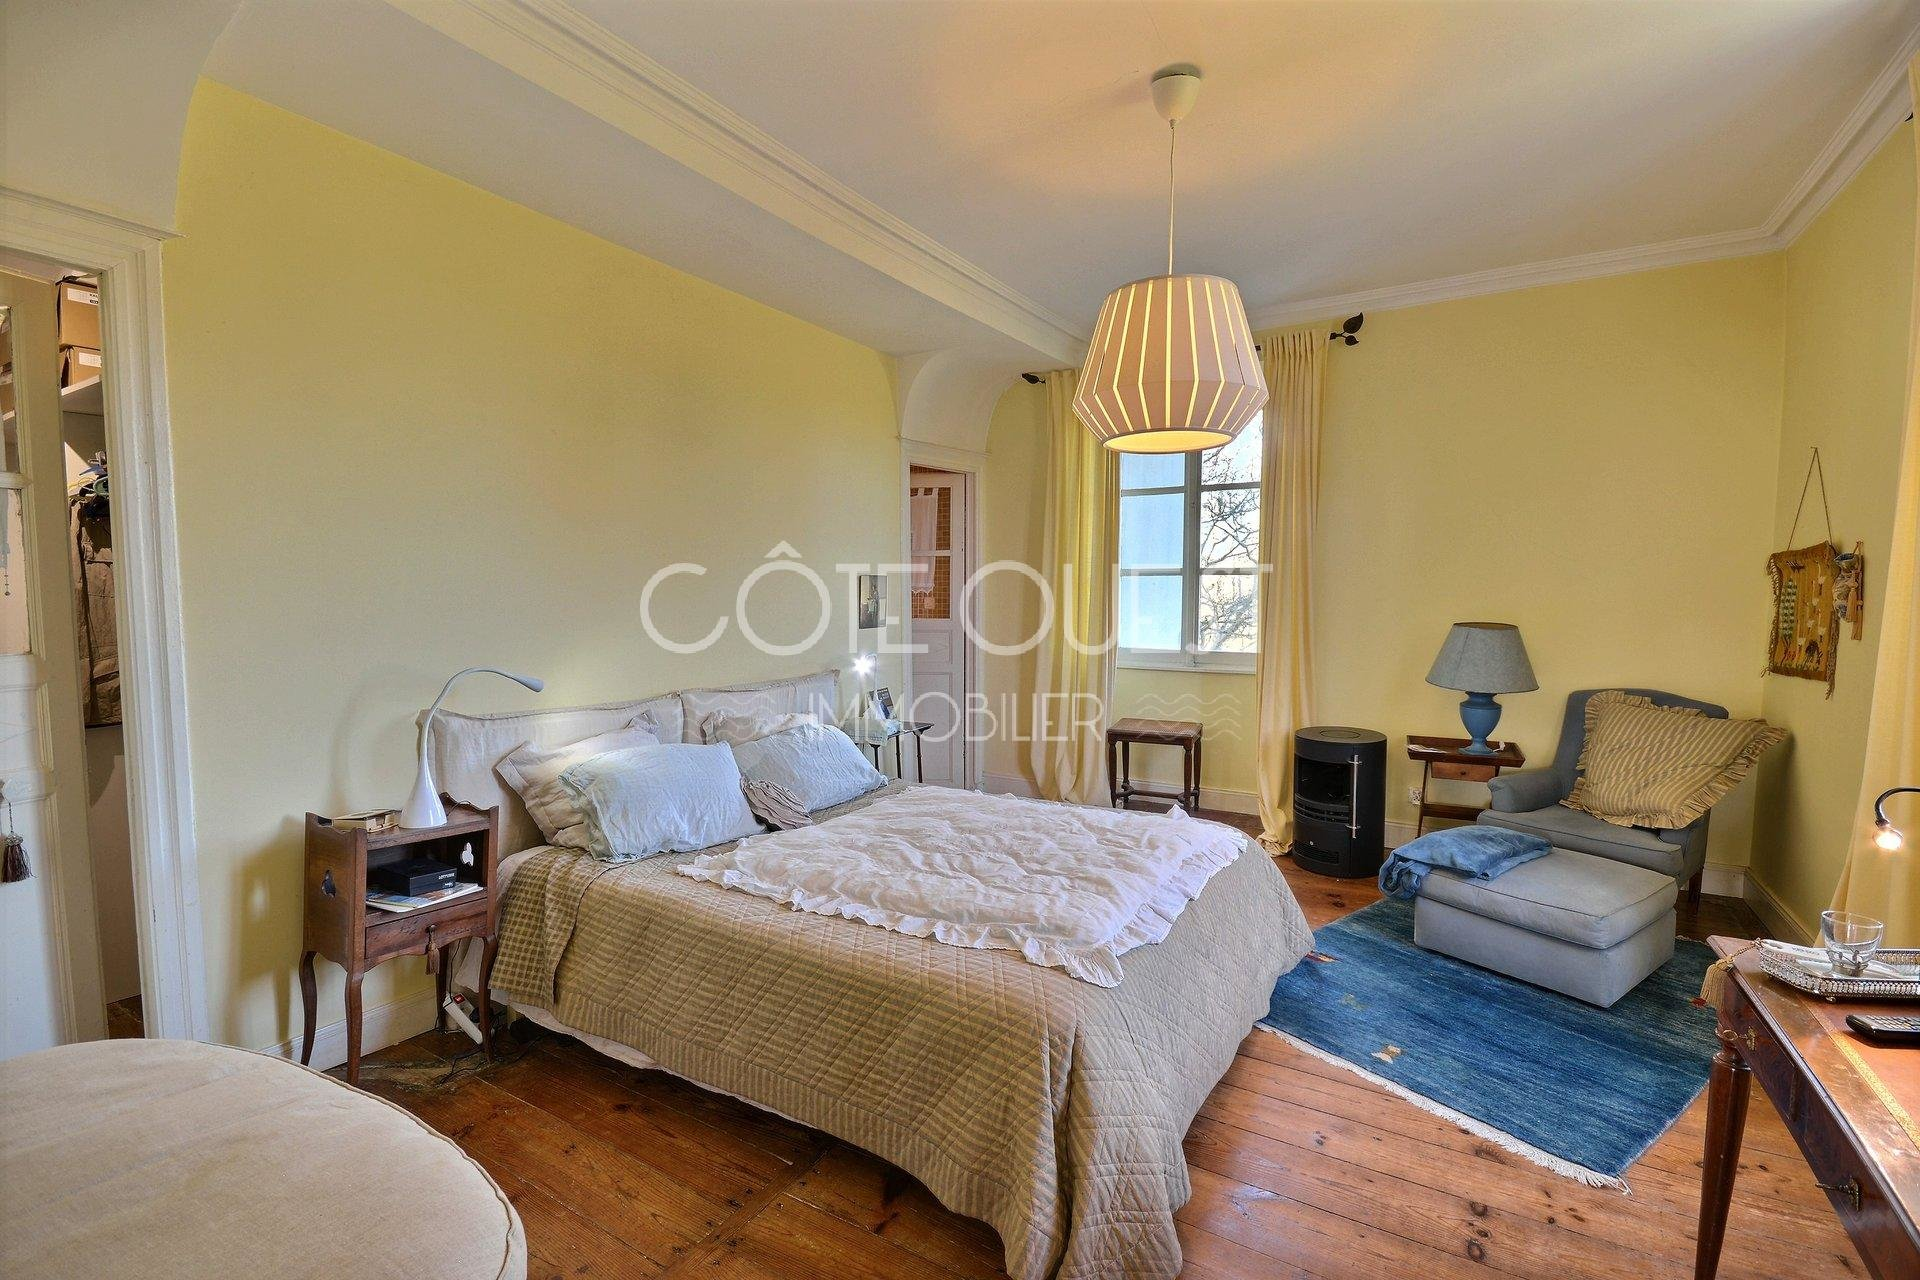 A PERIOD MANSION 15 MINUTES FROM HOSSEGOR